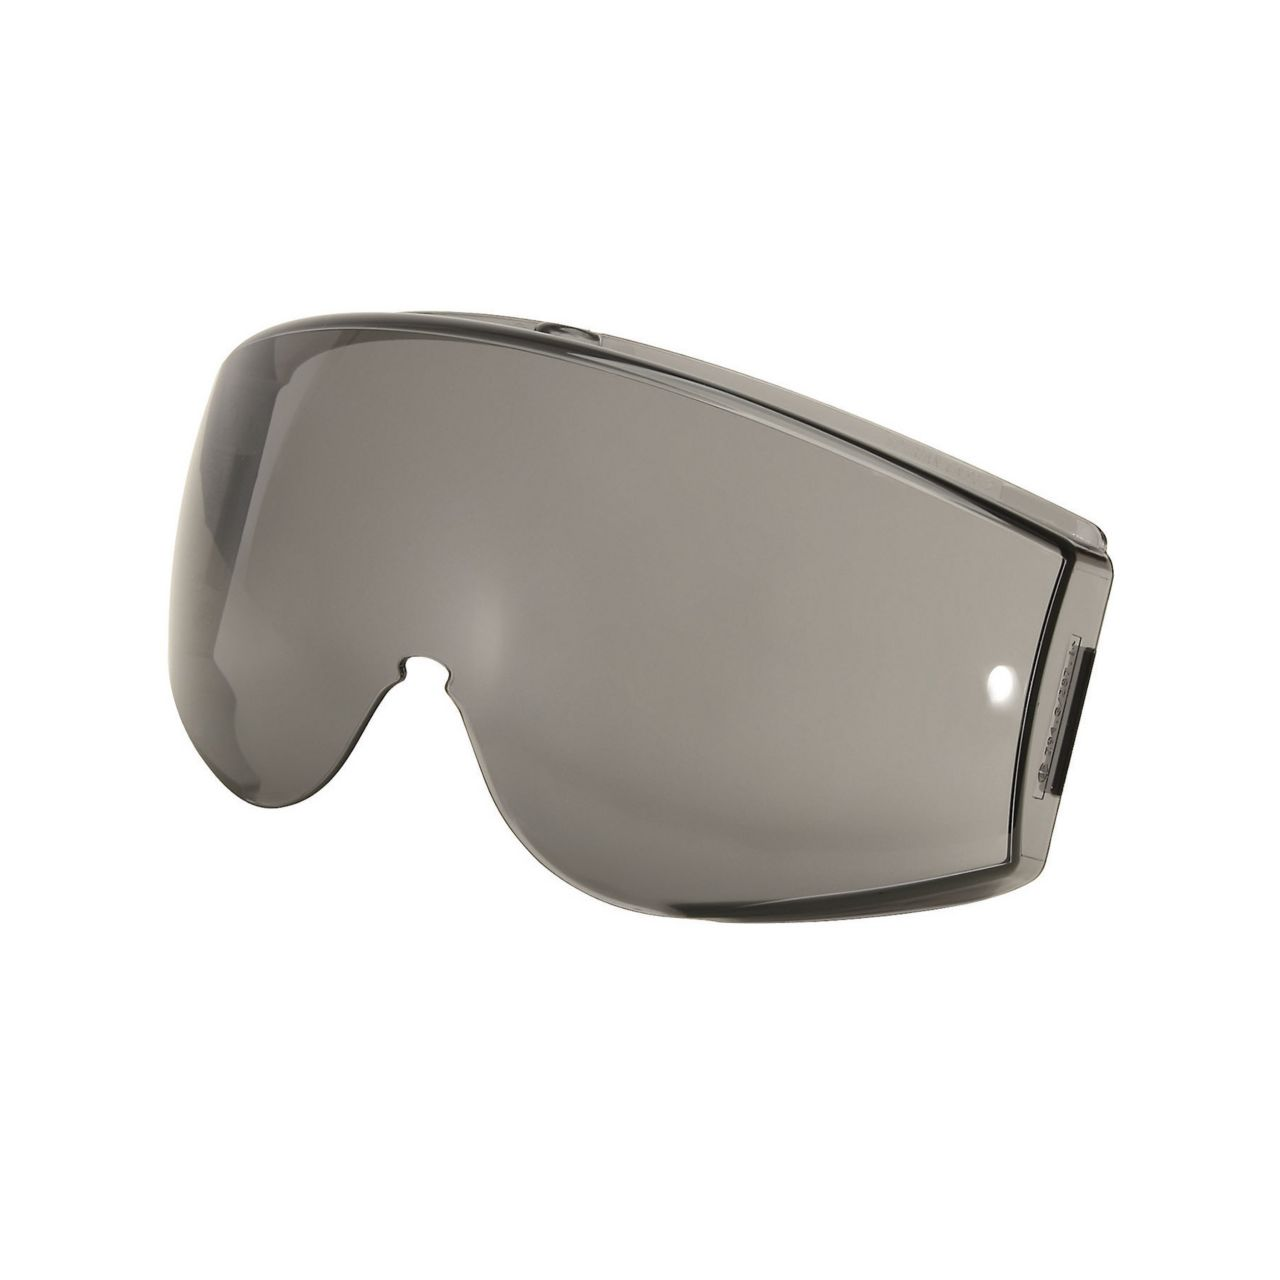 UX_uvex-stealth_uvex_stealth_goggle_gray_replacement_lens